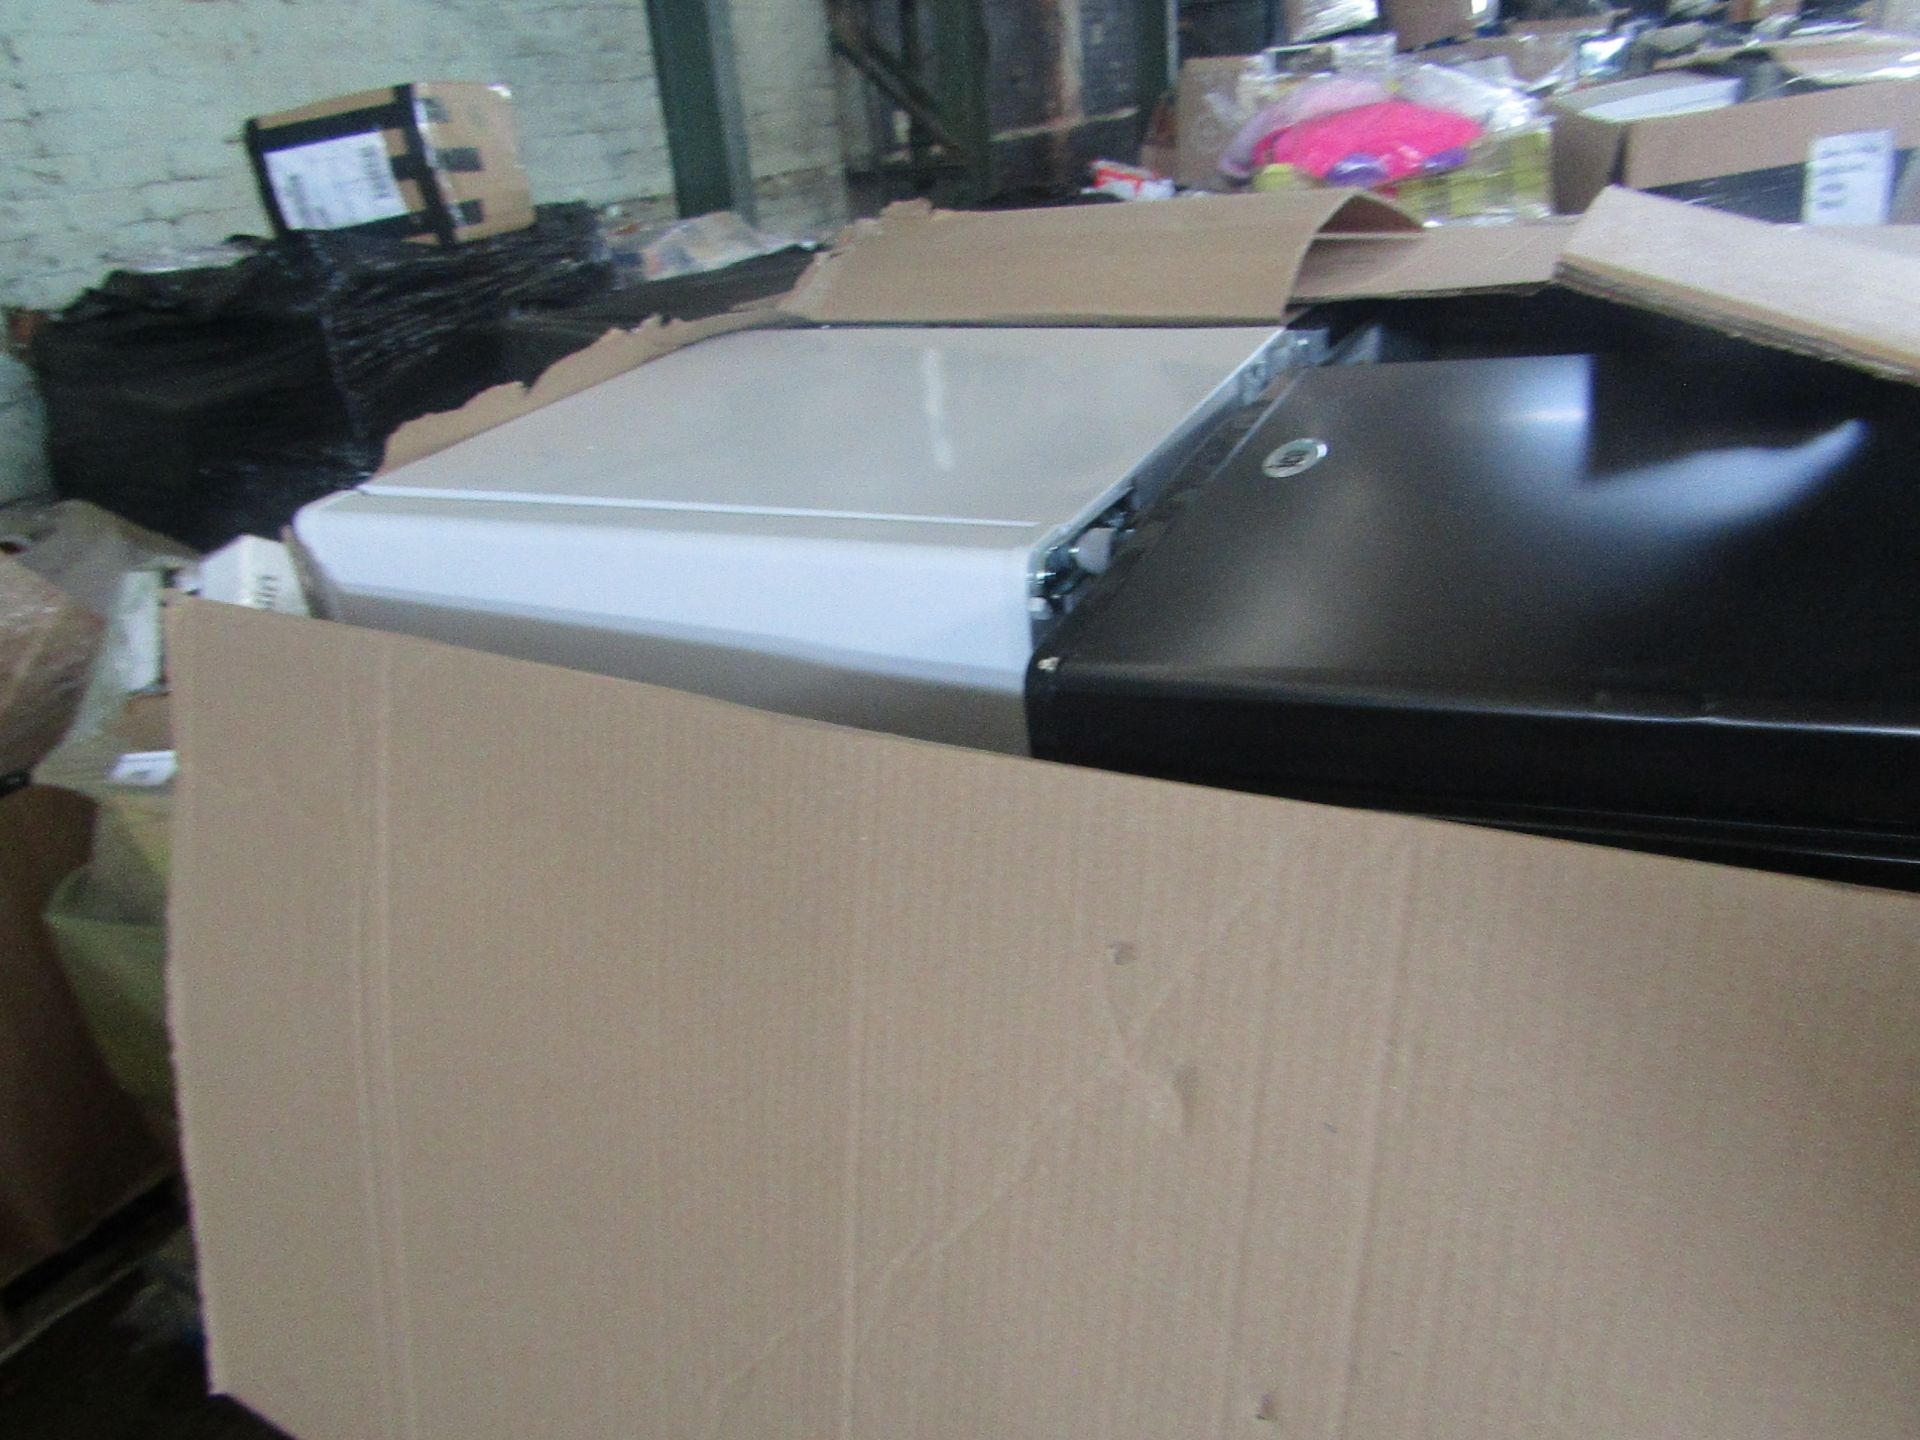   1X   PALLET OF FAULTY / MISSING PARTS / SIXTY FRIDGES UNMANIFESTED   PALLET REF -   please note